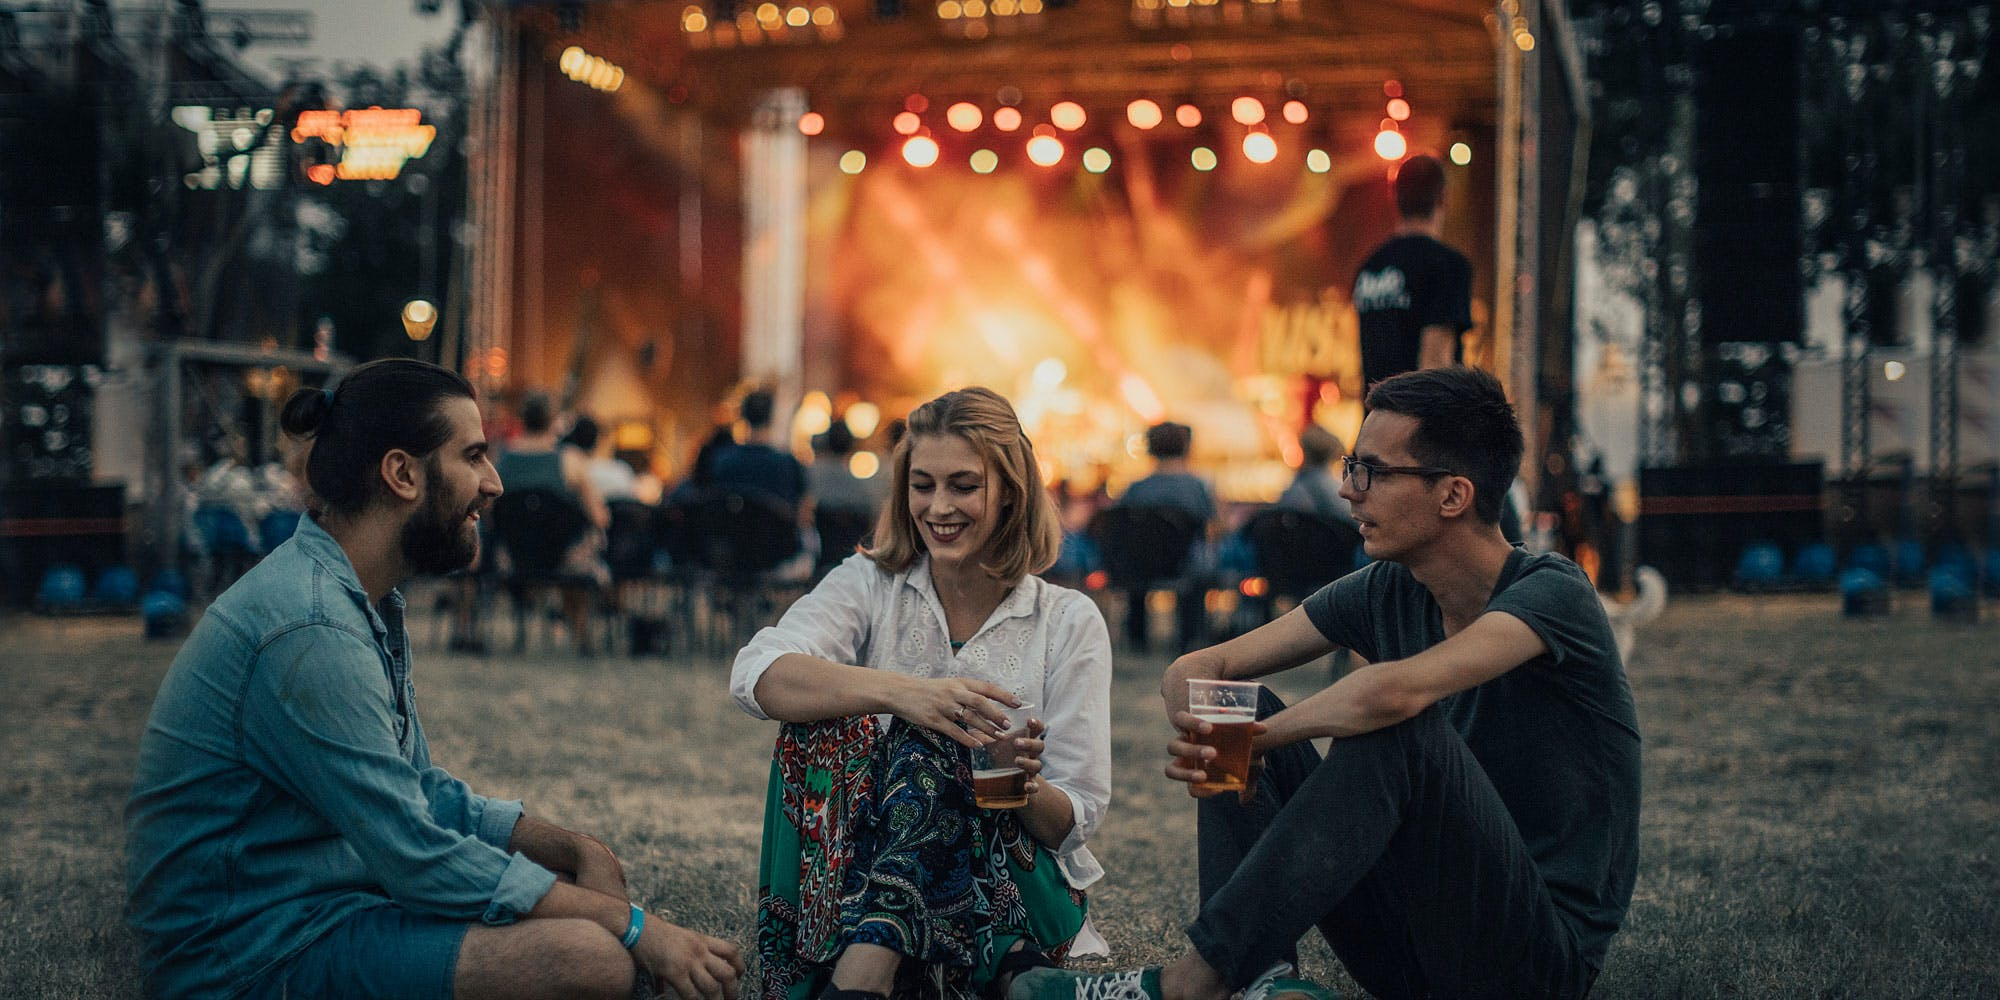 Three young adults sitting infront of a music concert talking about best vaporizer for concerts